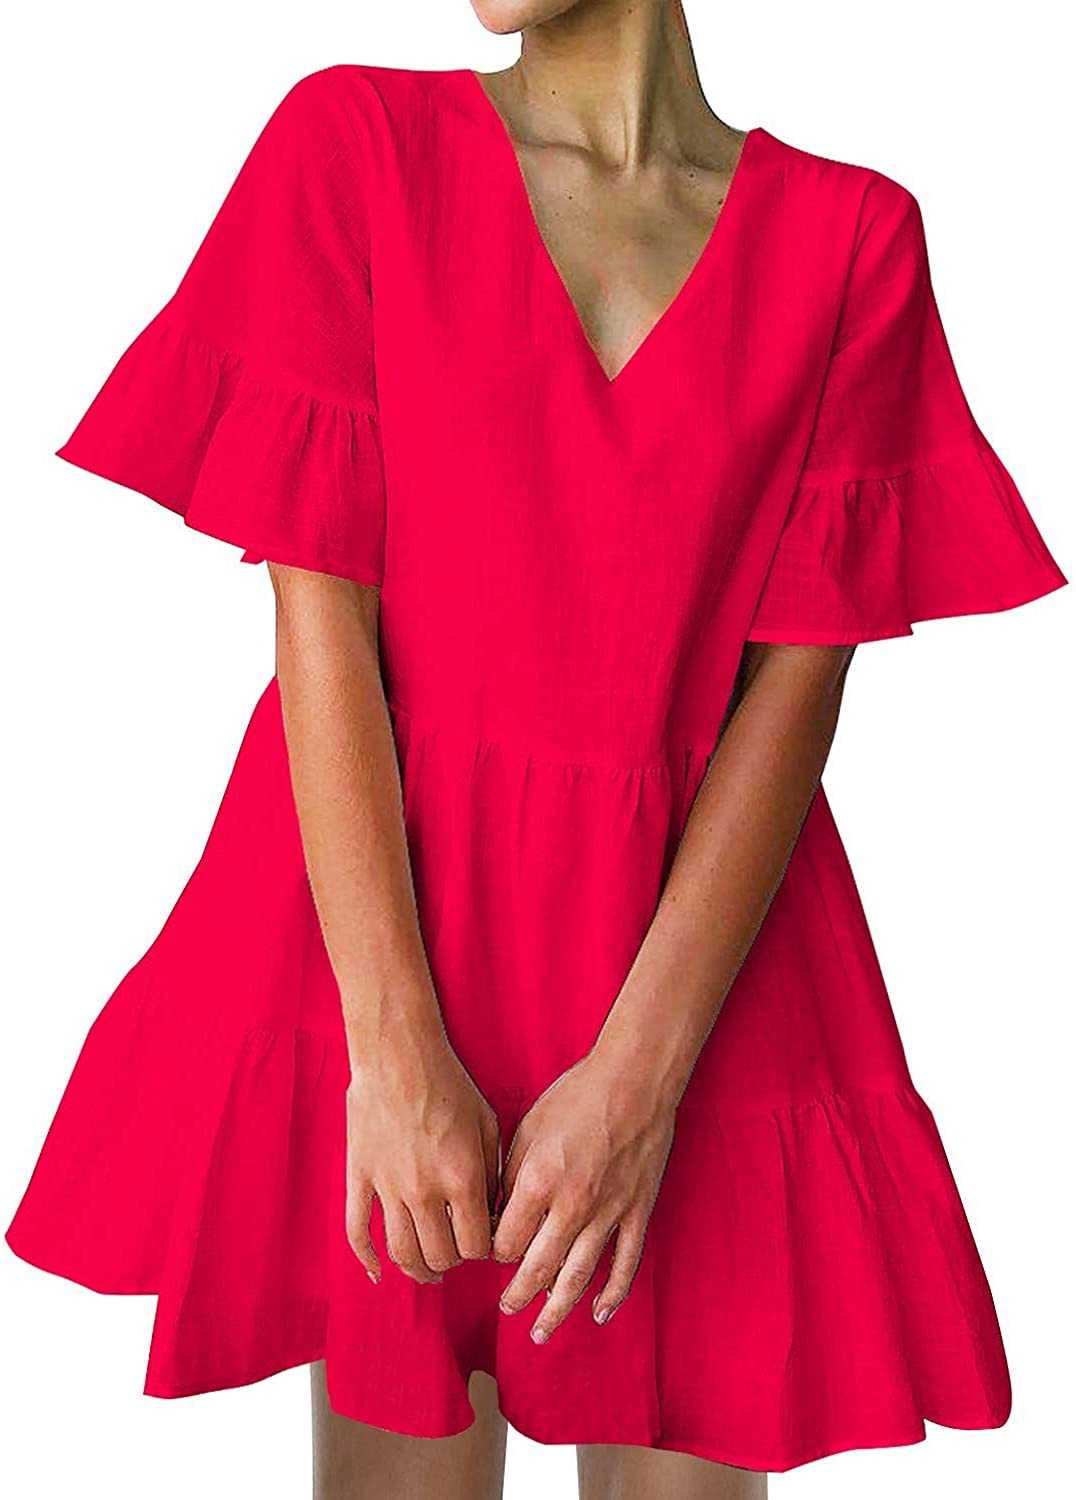 Women's Cute Shift Dress with Pockets Fully Lined Bell Sleeve Ruffle Hem V Neck Loose Swing Tunic Mini Dress